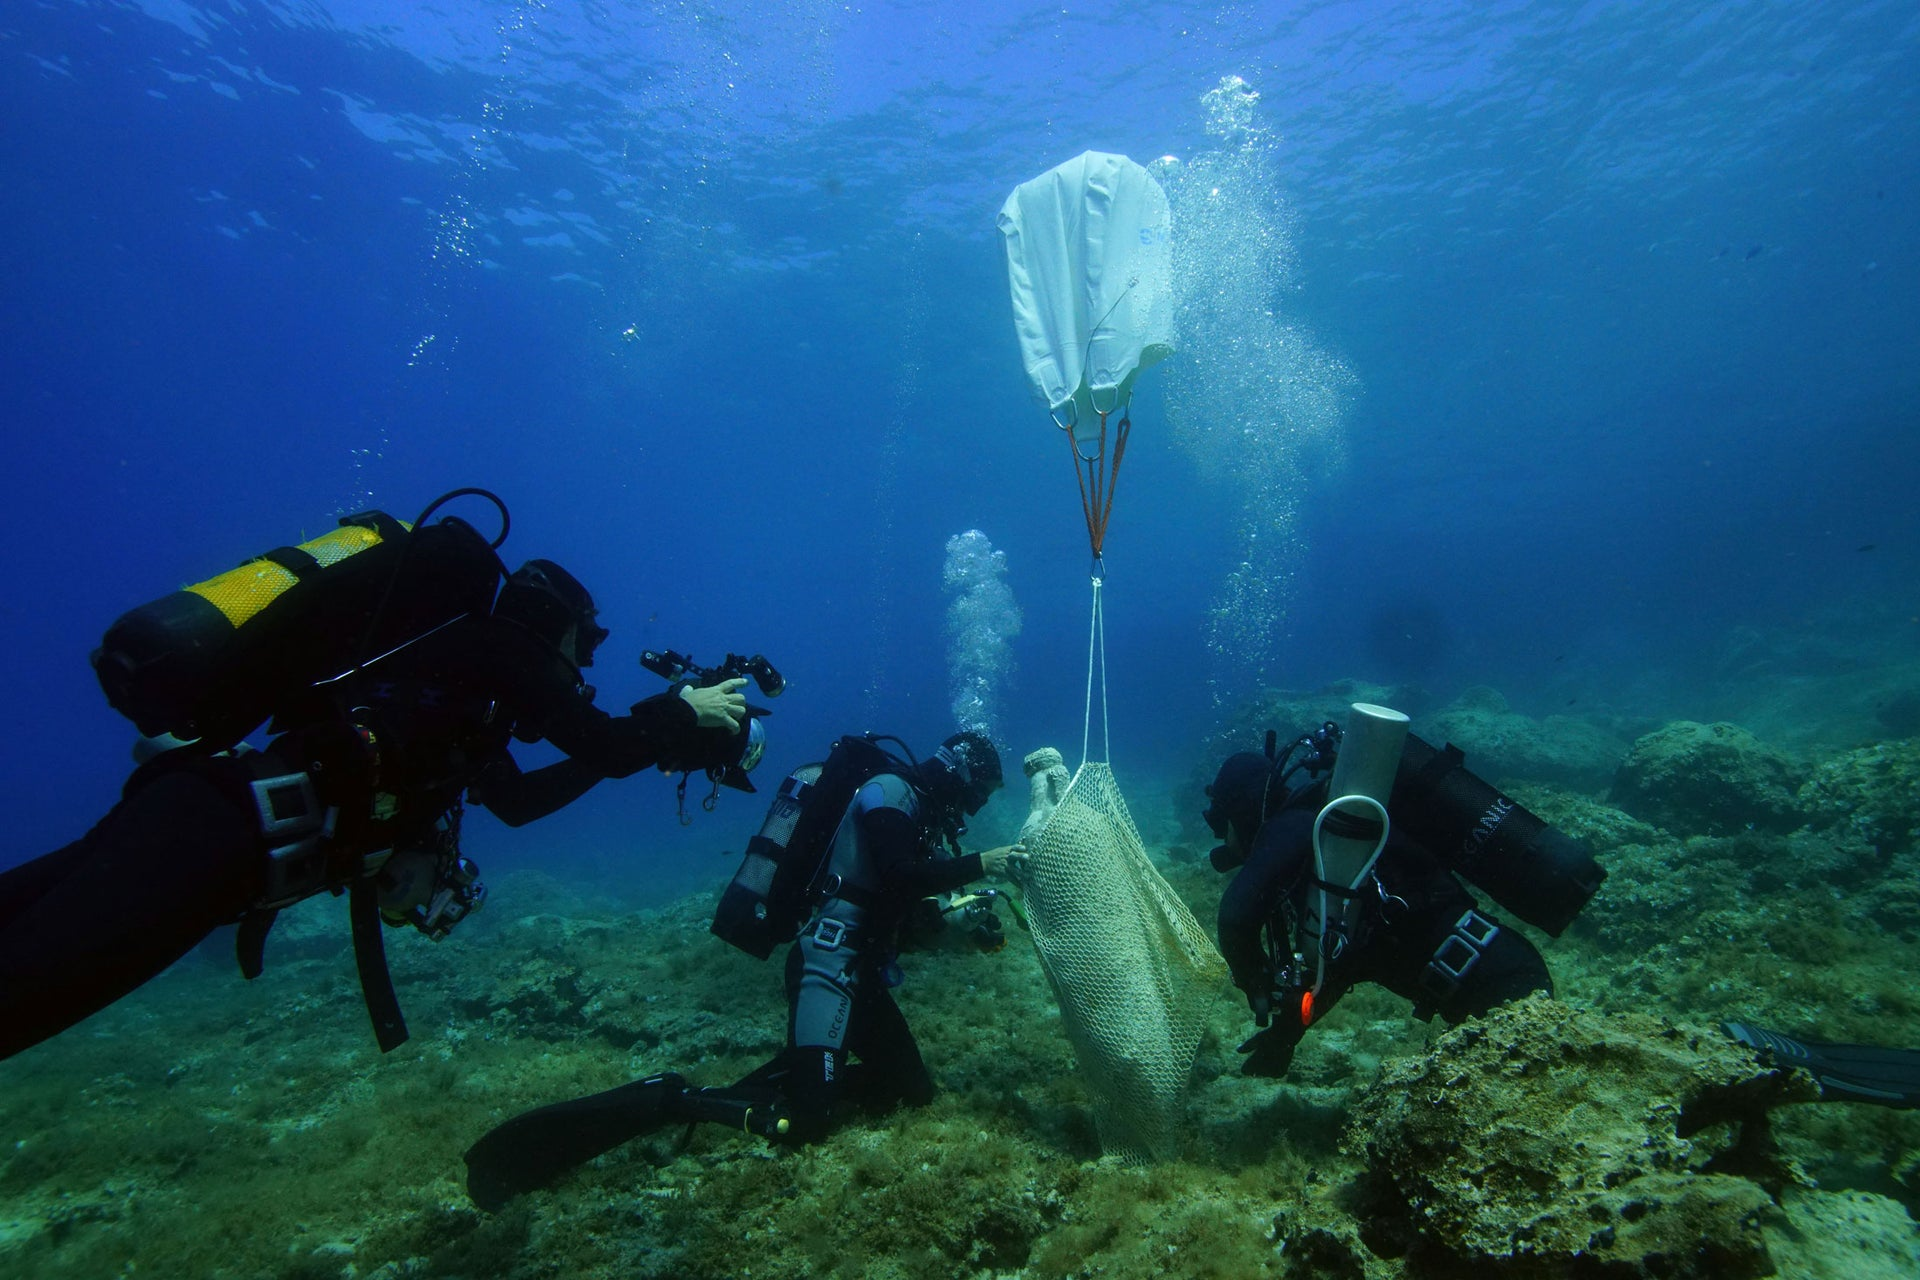 Divers raise a Roman North African amphora for further study and conservation.